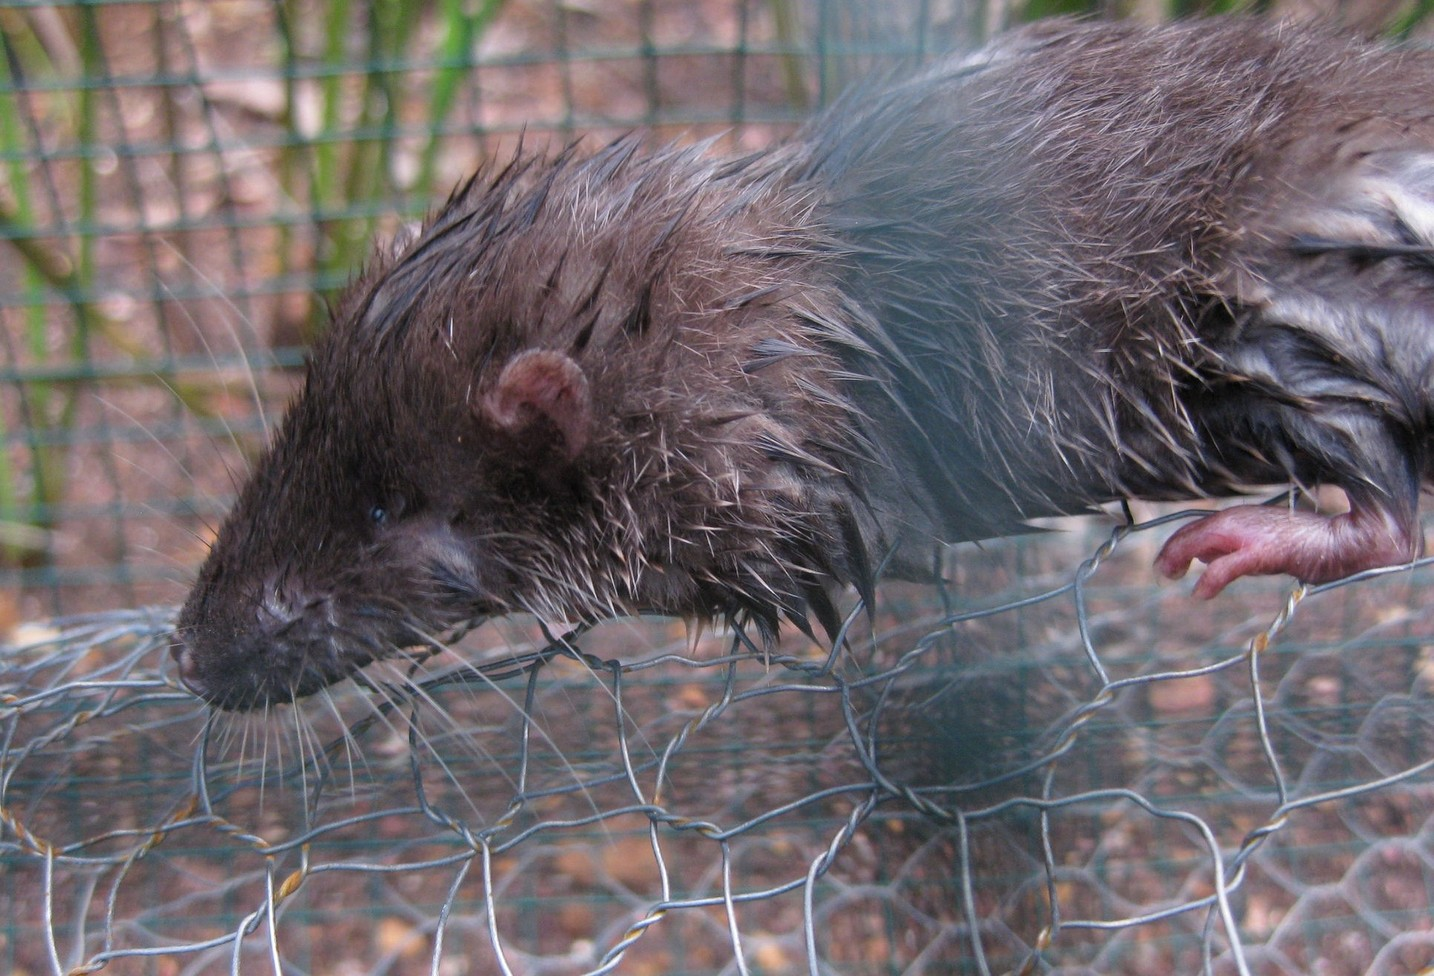 Mining activities have destroyed parts of the Nimba otter shrew's habitat.